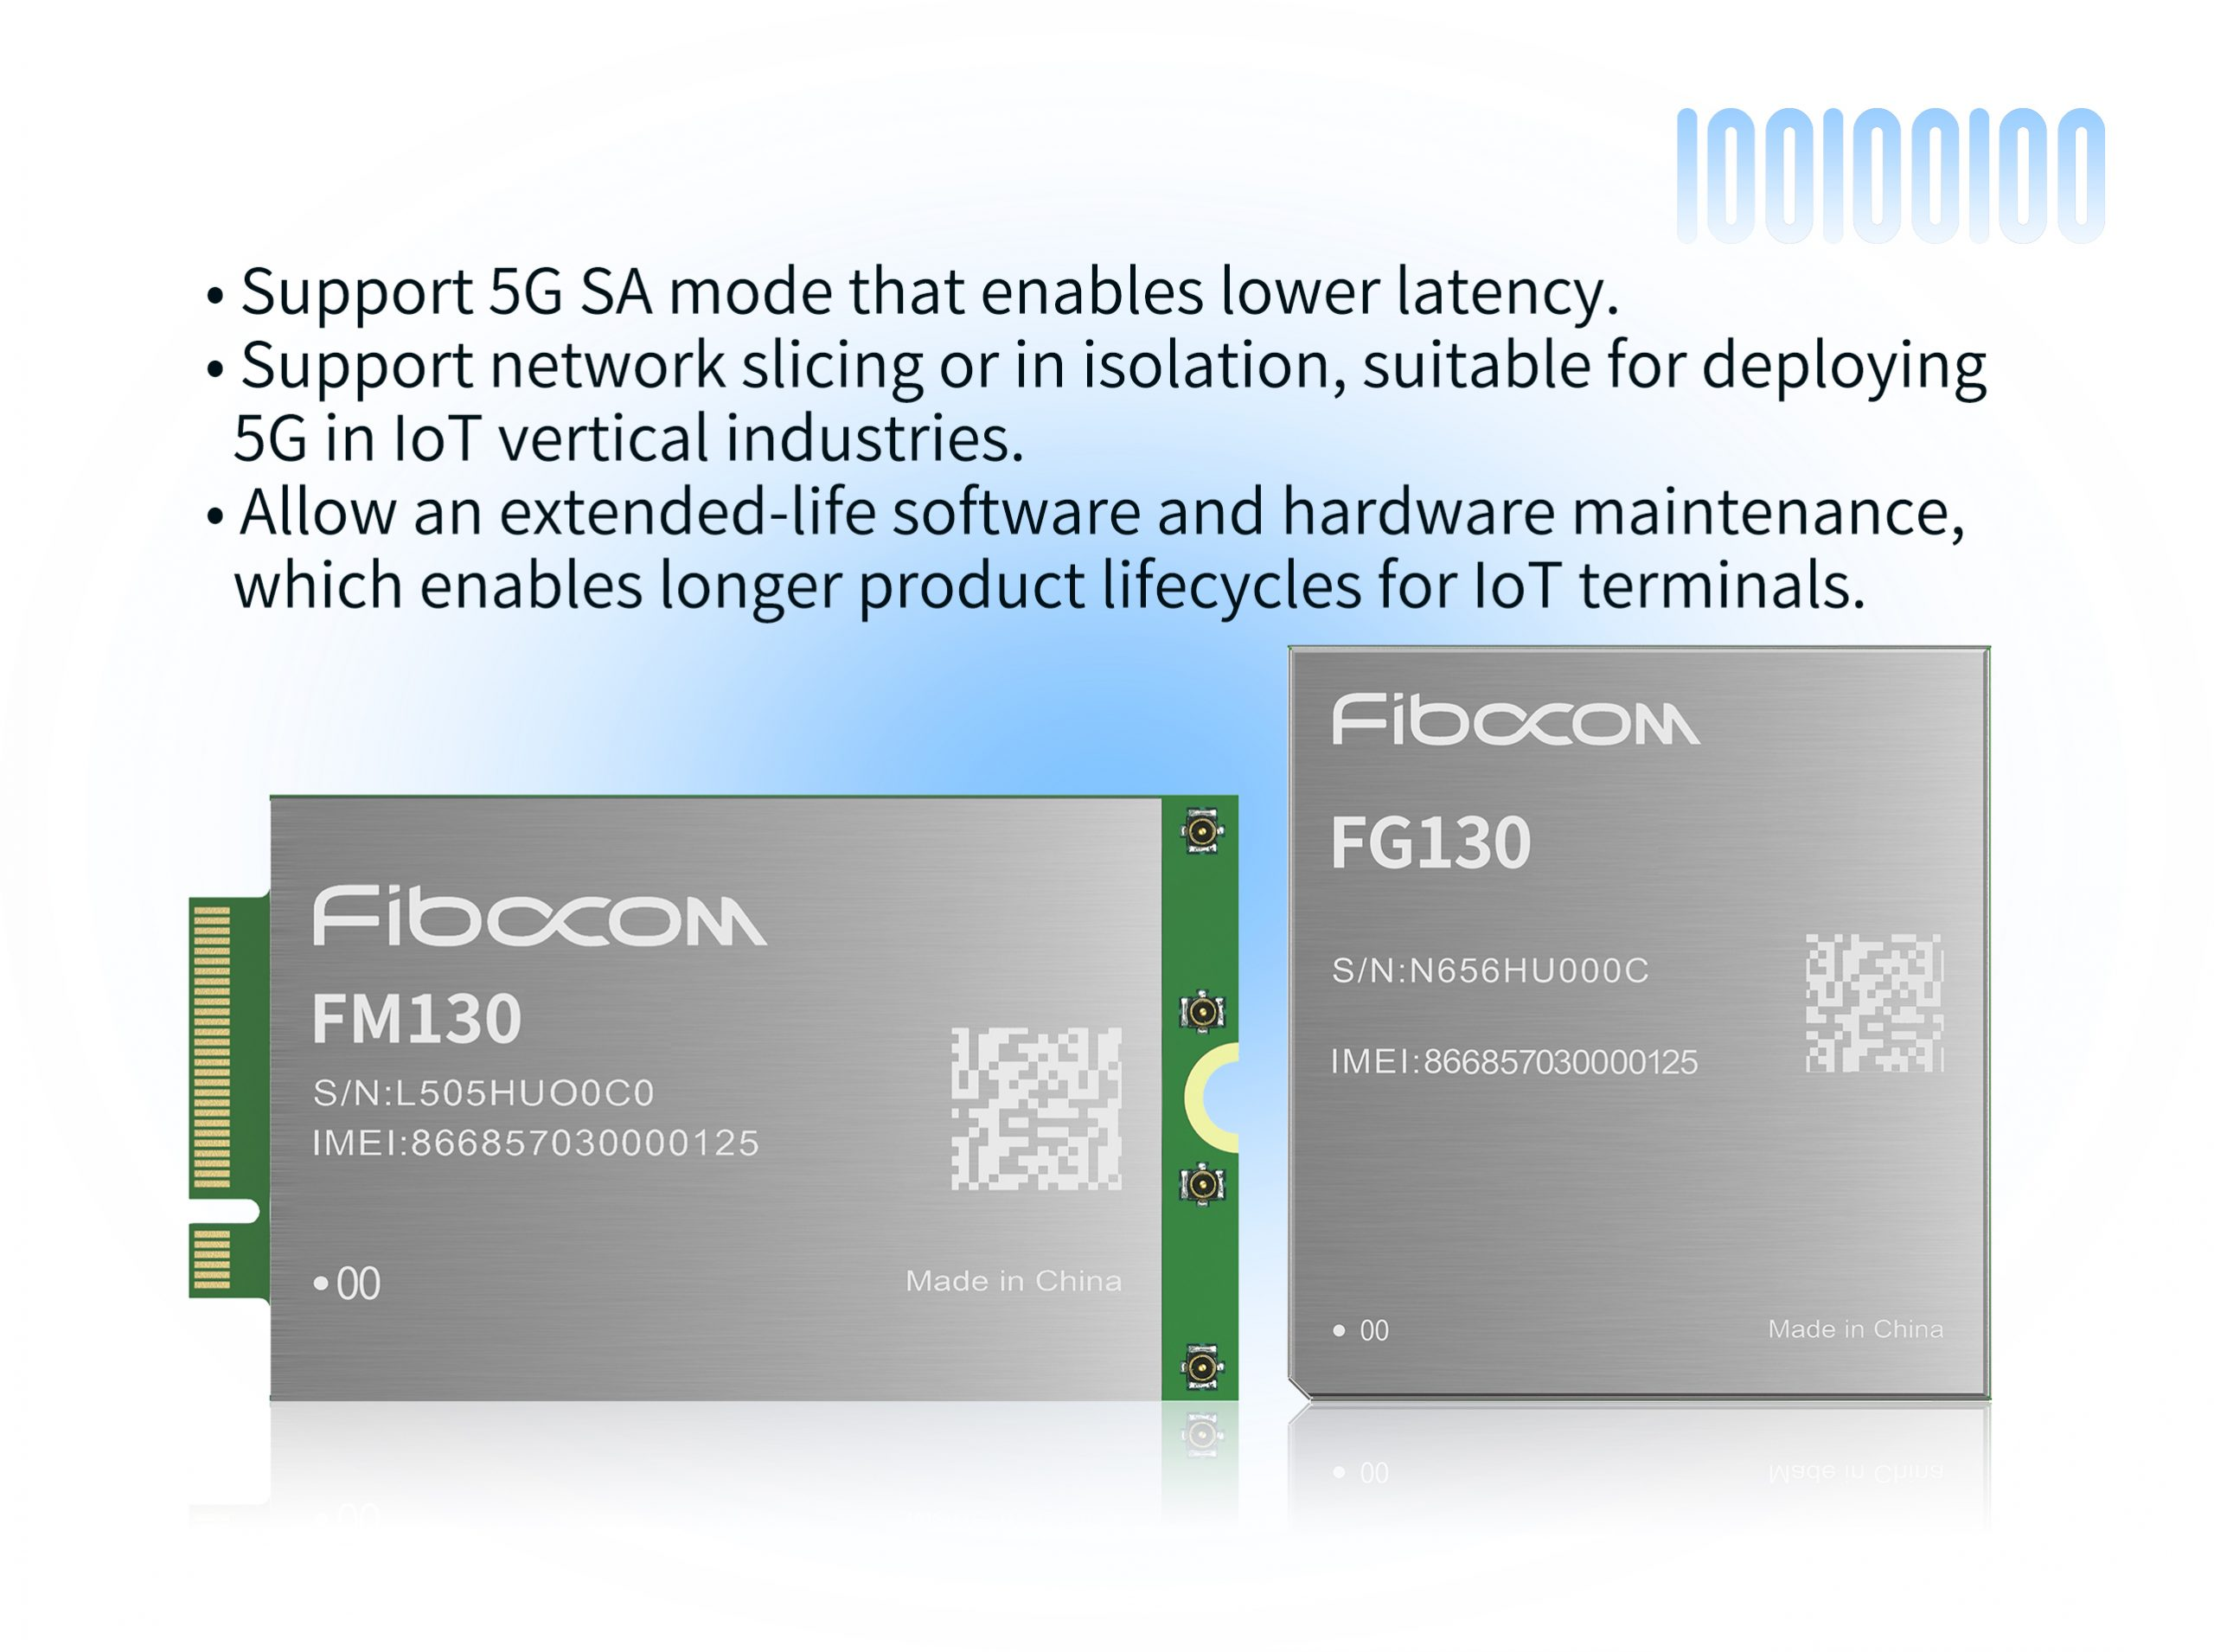 Fibocom Launches 5G Module Series FG130 and FM130 Powered by Qualcomm 315 5G IoT Modem in MWC 2021